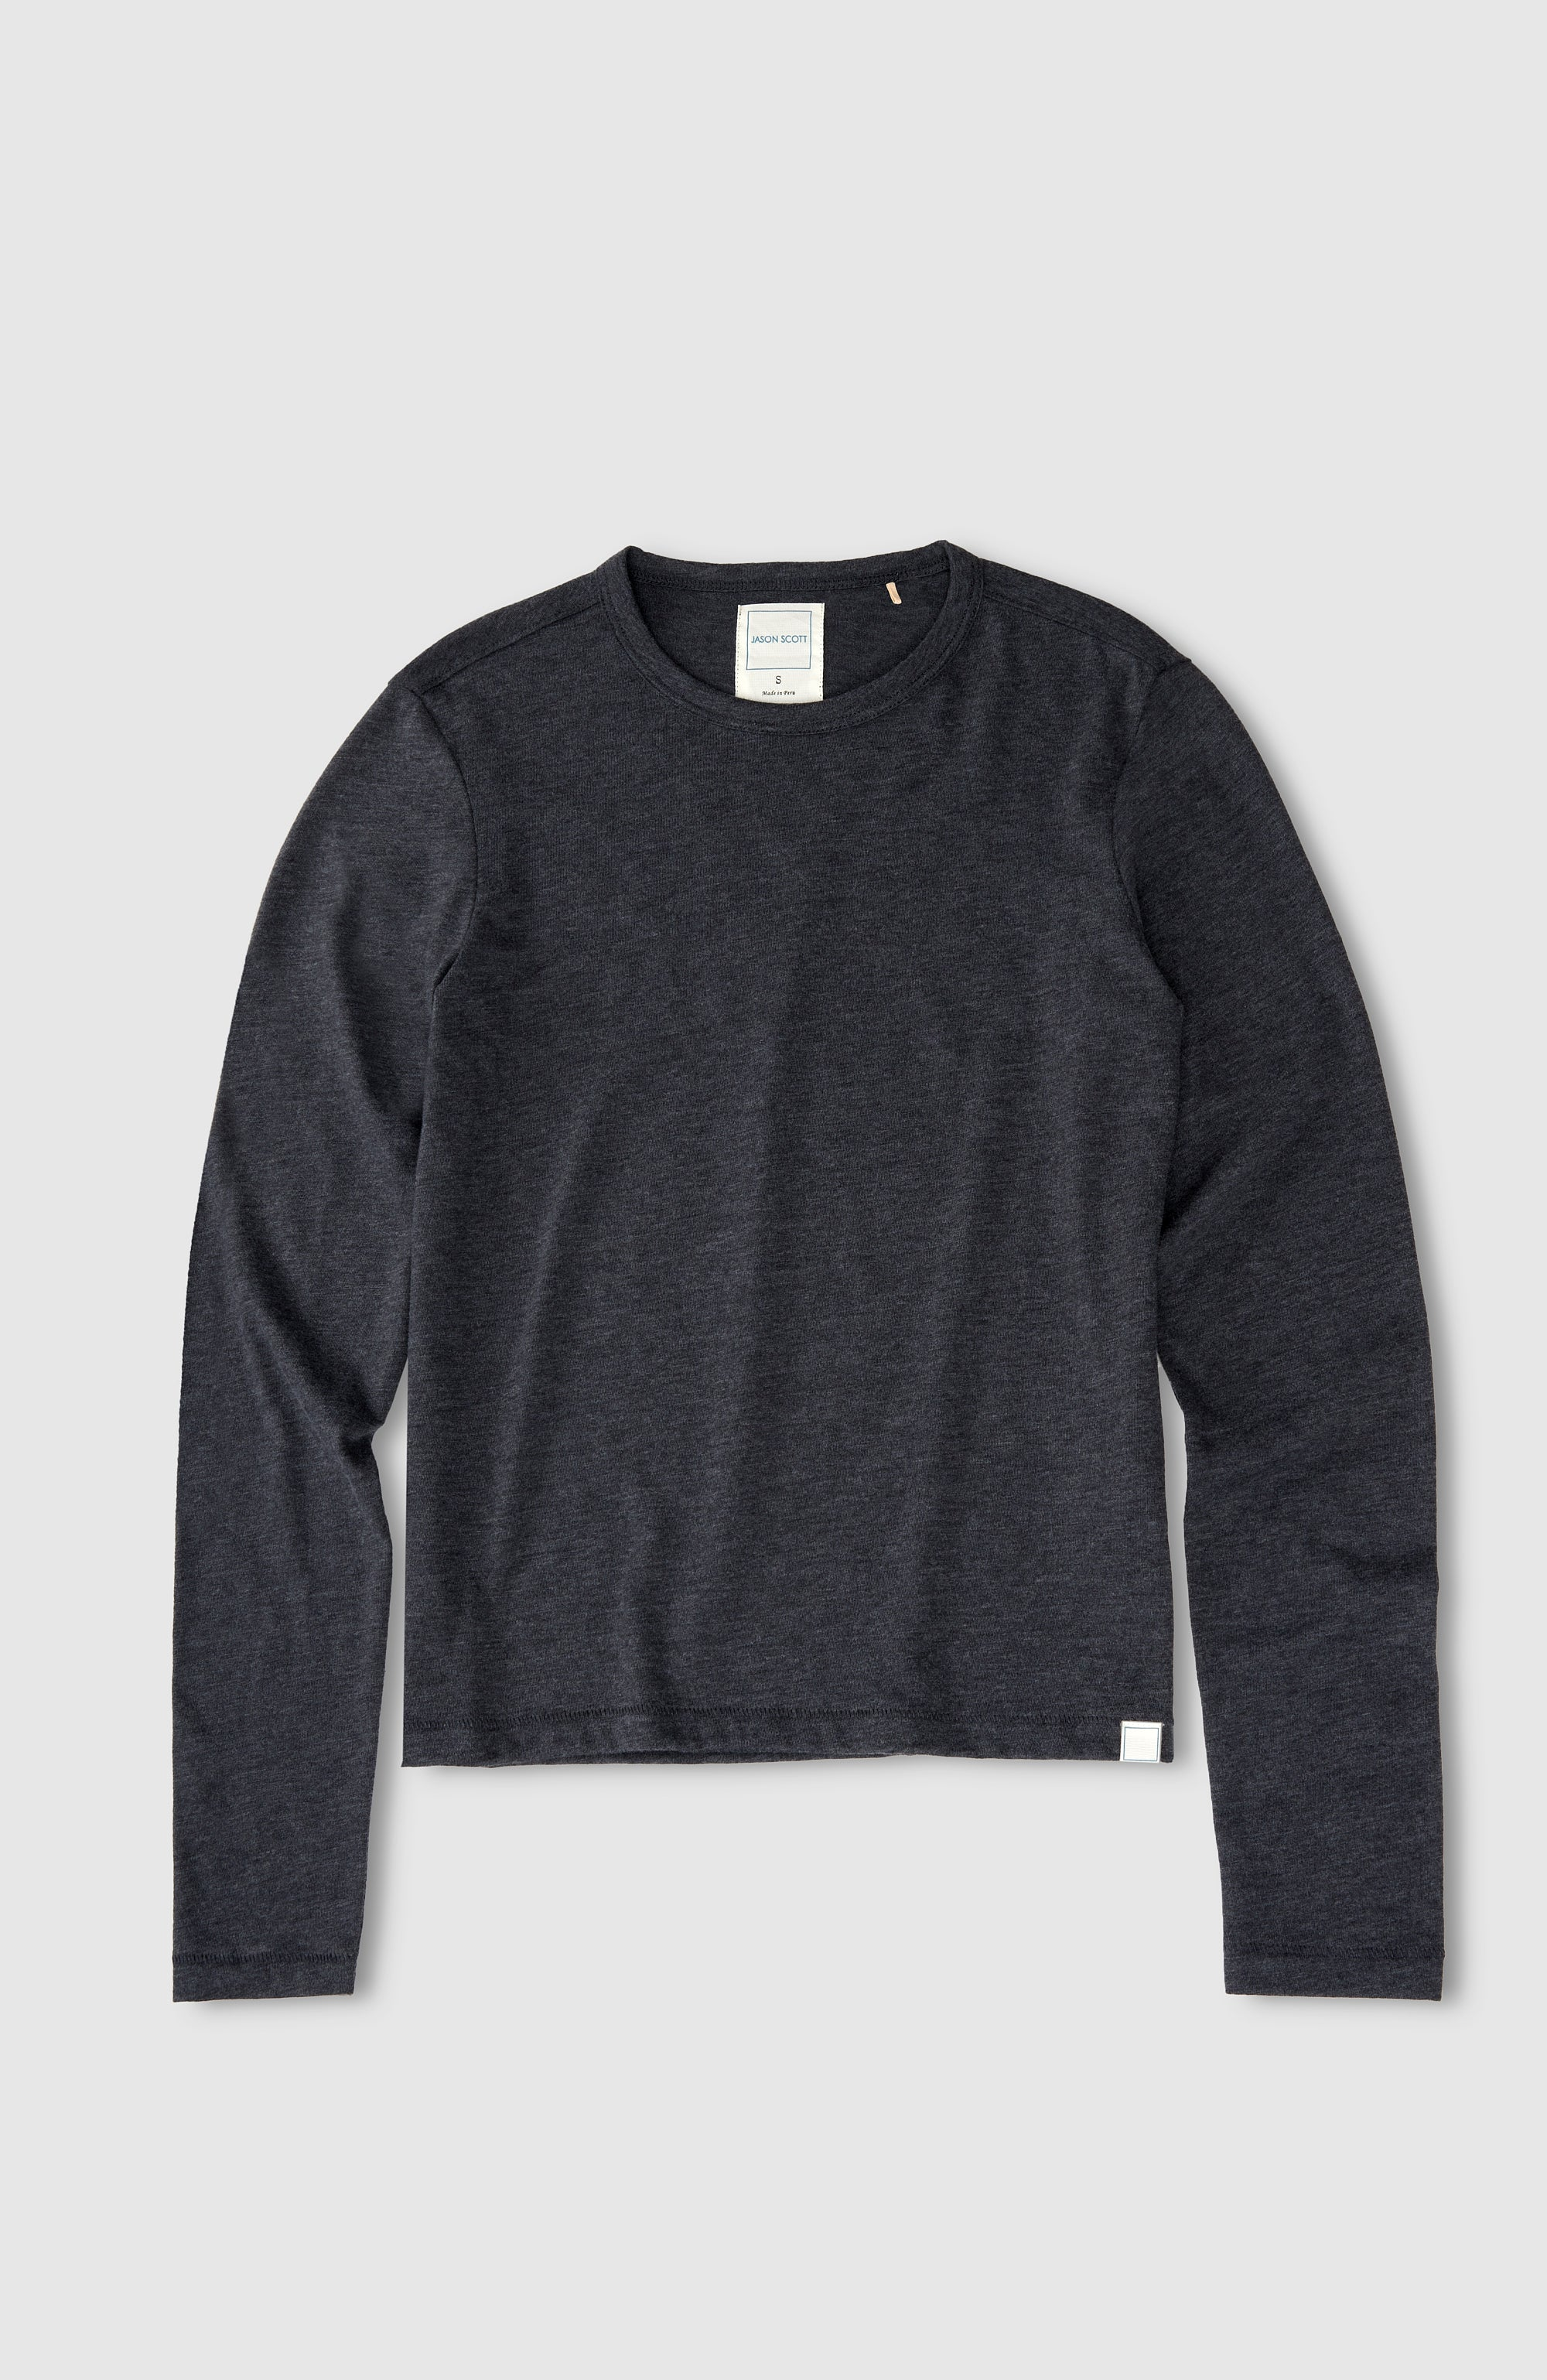 L/S Shrunken Crew - Heather Charcoal